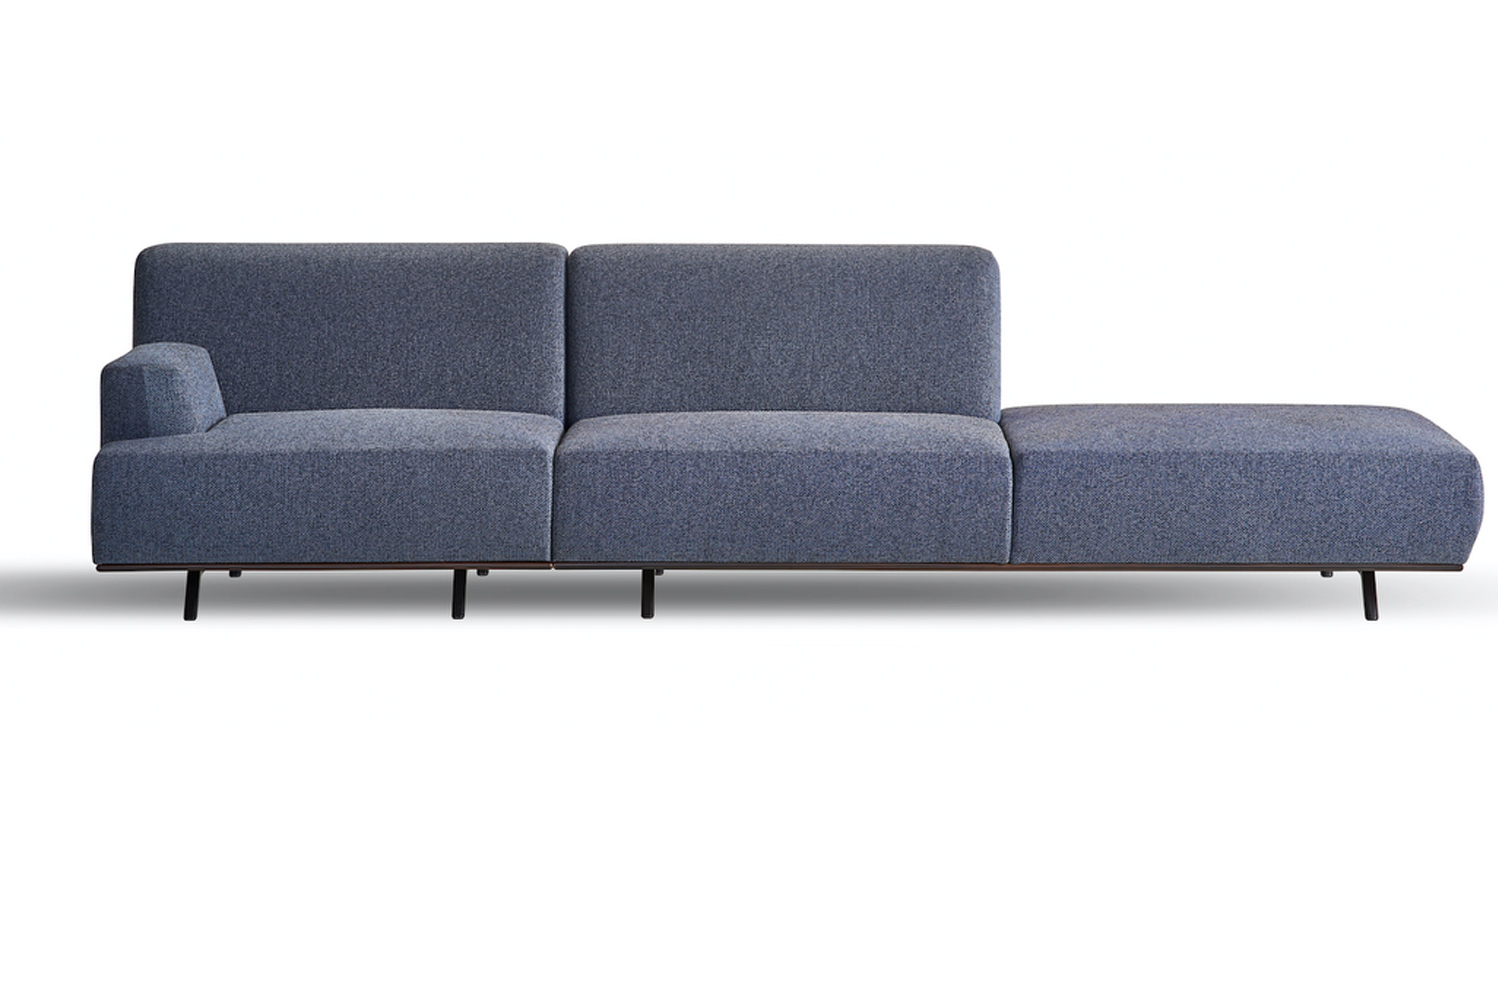 The Oscar sofa, designed by Studio Kairos for Koleksiyon, has an elongated, delicate frame spun from slender metal legs that are drawn out in an A-line shape at the sofa's sides.